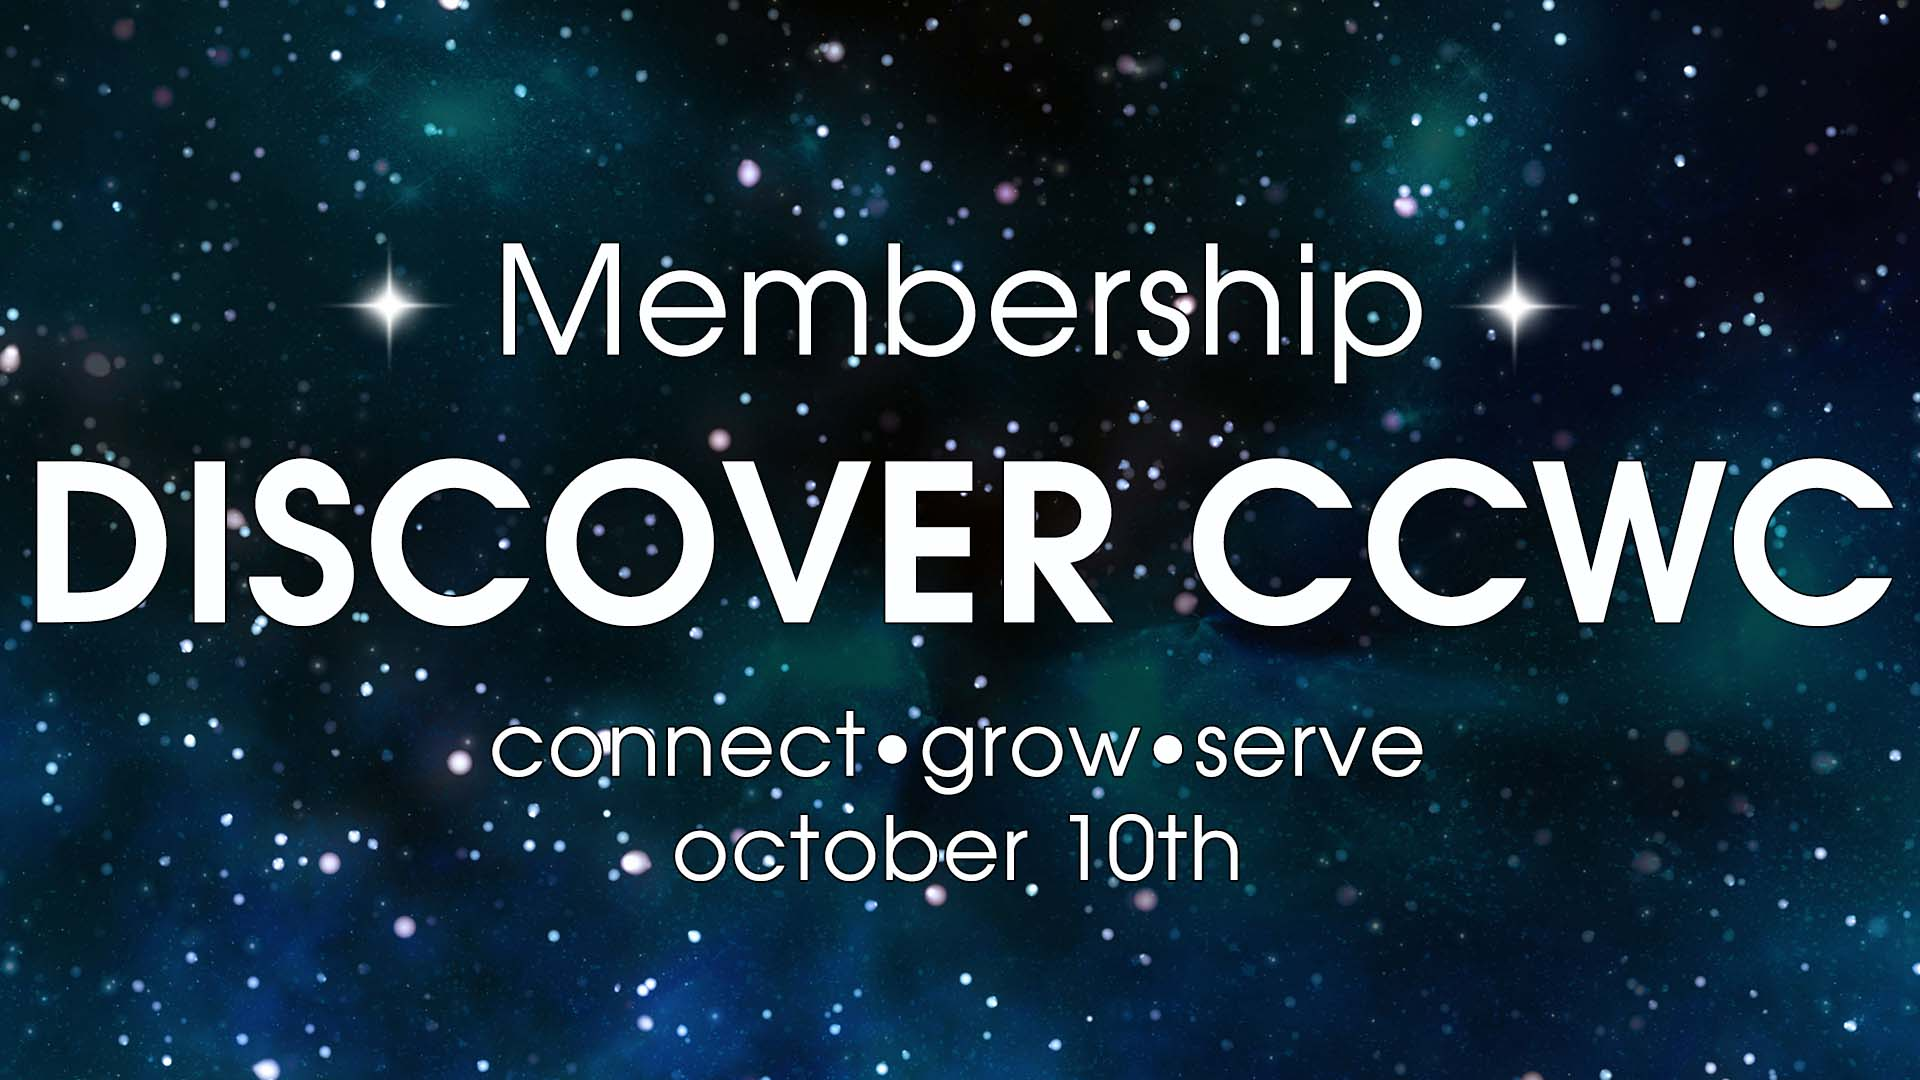 Discover CCWC